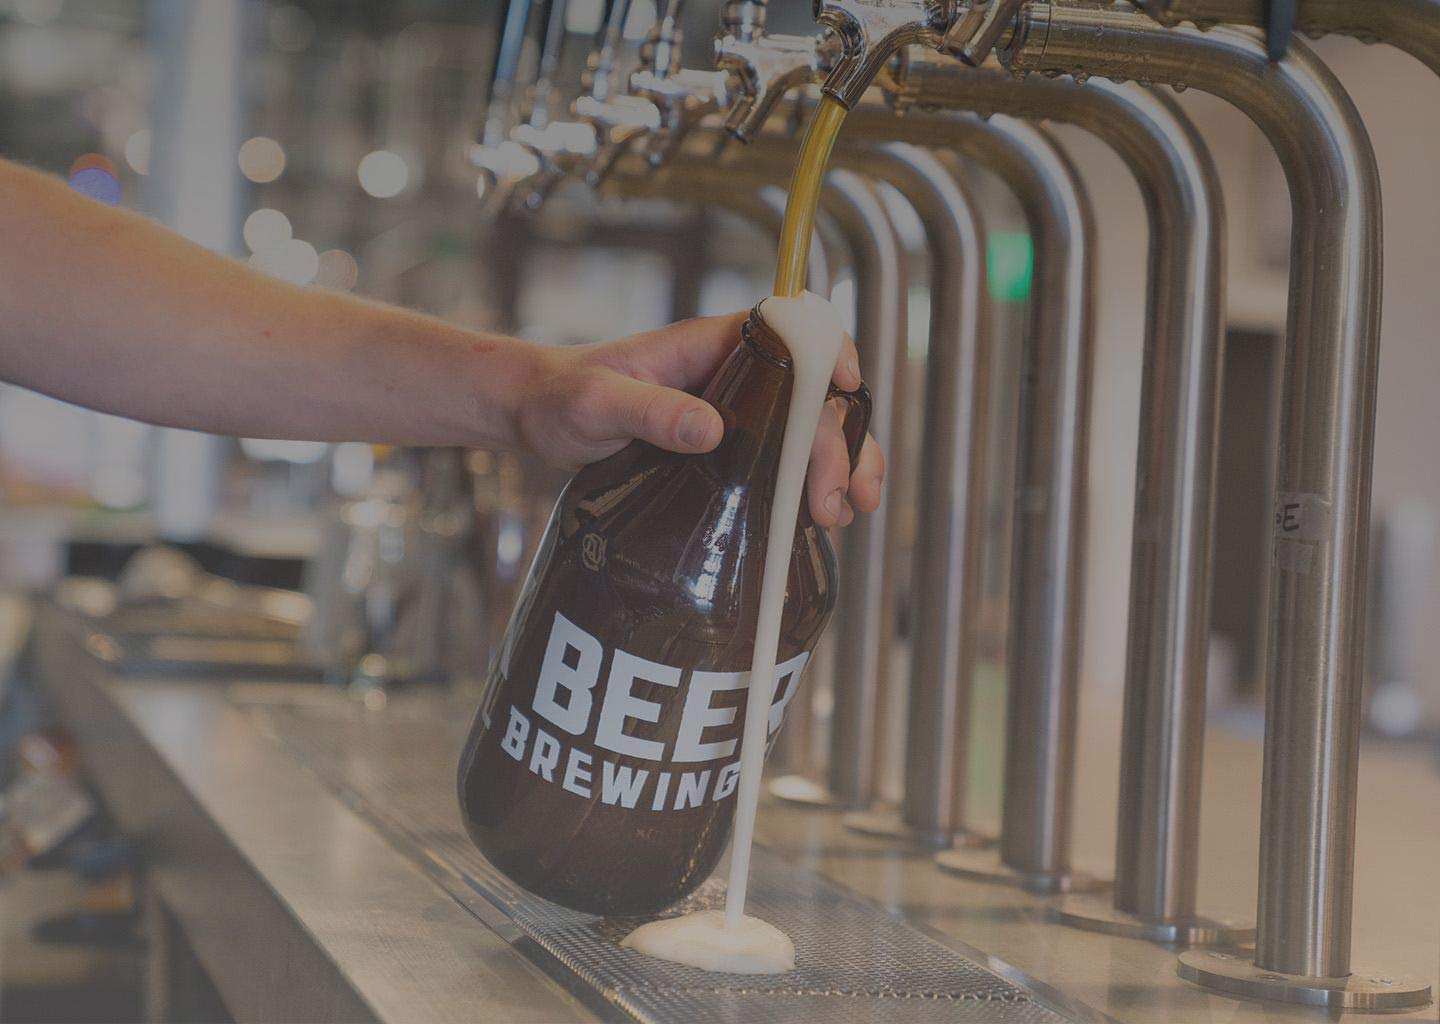 Growler glass bottle being filled with beer